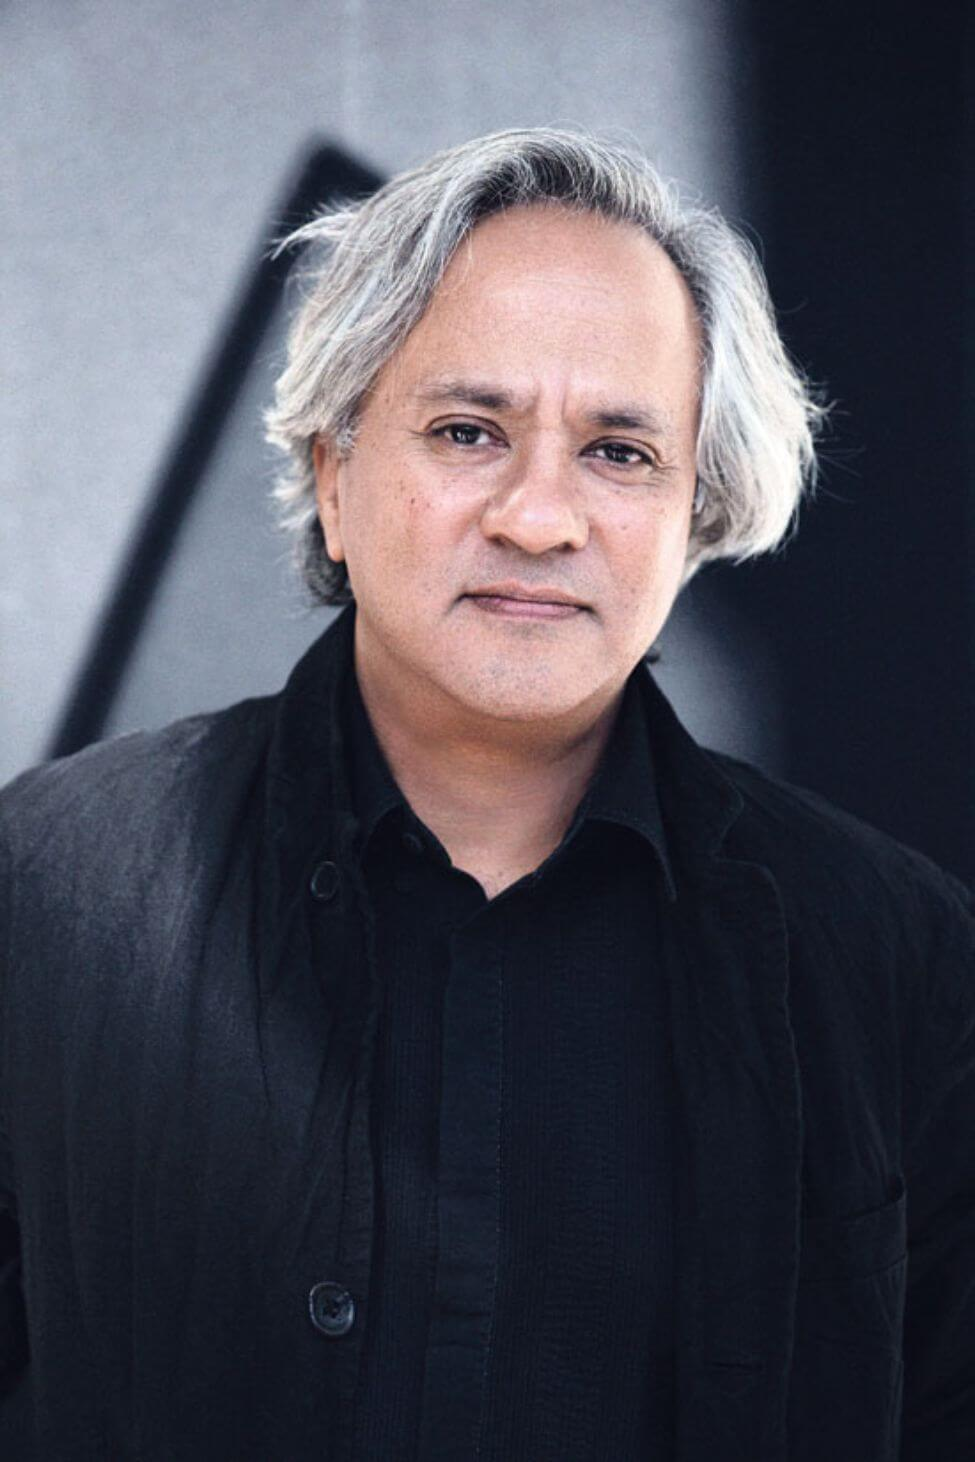 Anish Kapoor Artwork for Sale